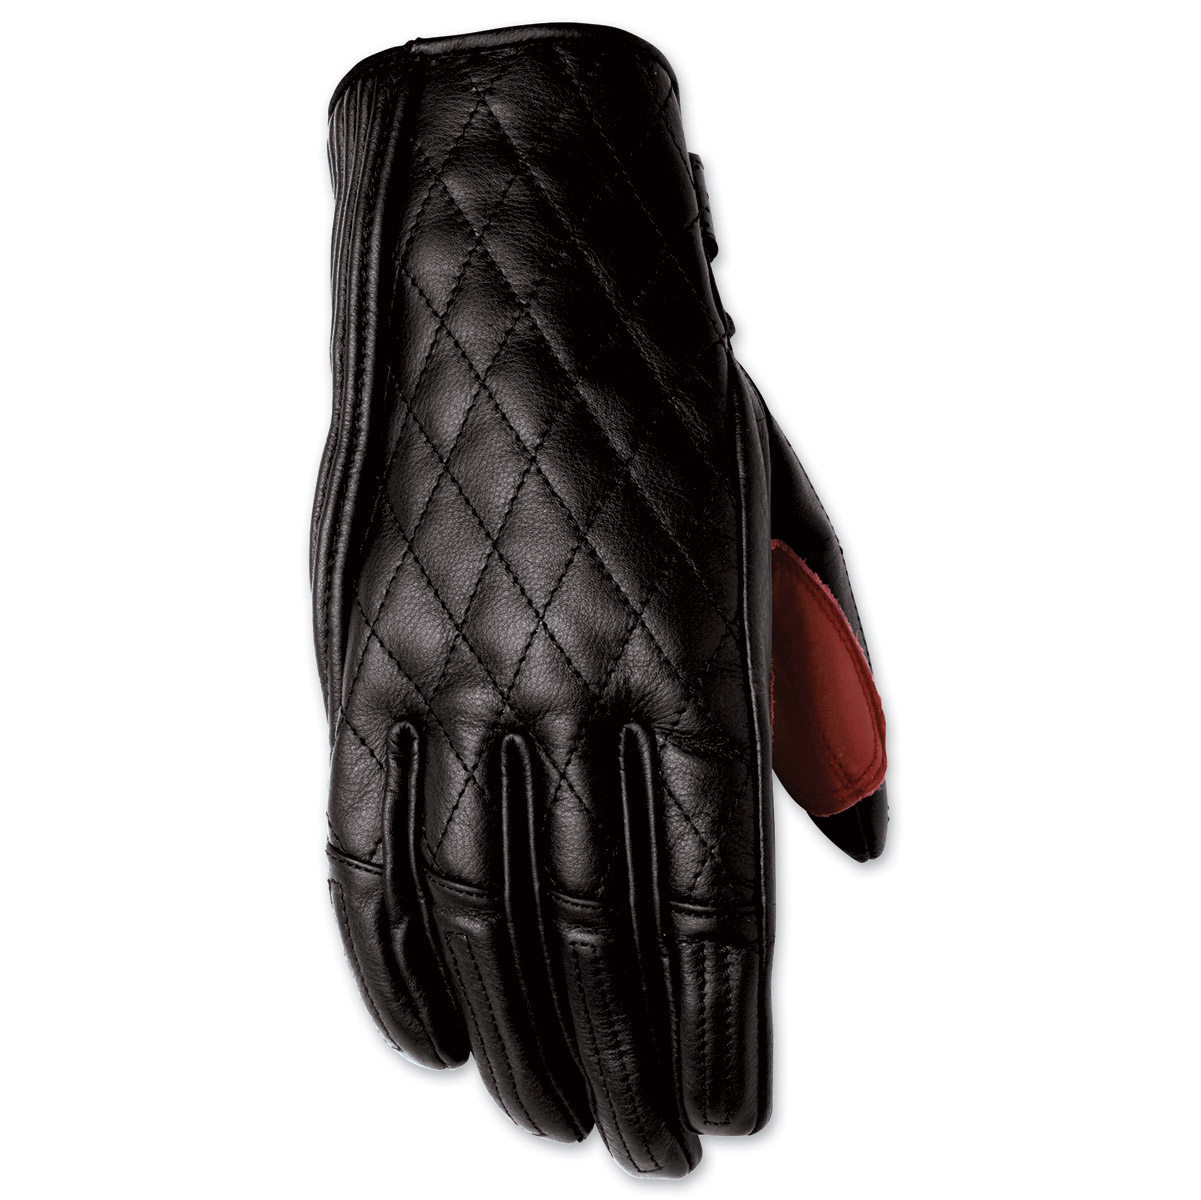 Womens leather motorcycle riding gloves - Roland Sands Design Riot Ladies Black Leather Gloves